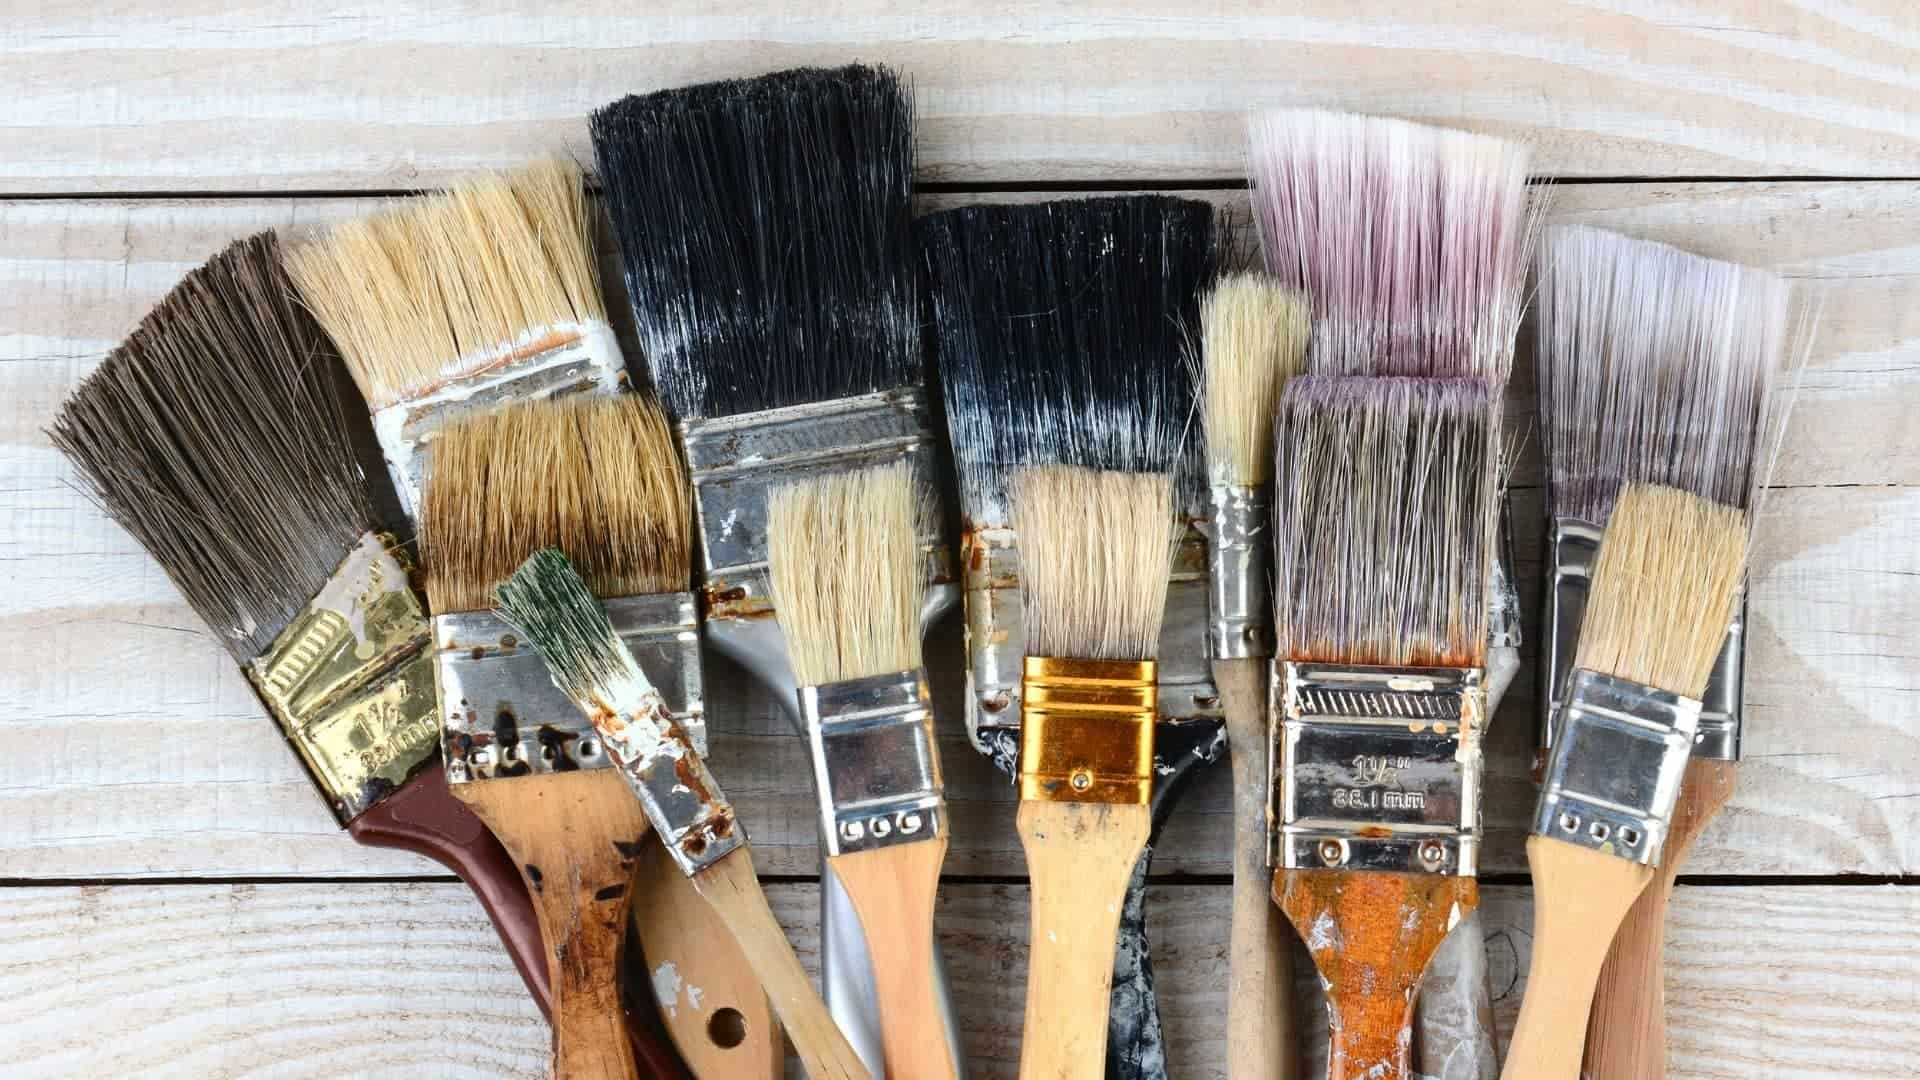 How To Use Paint Thinner To Clean Brushes